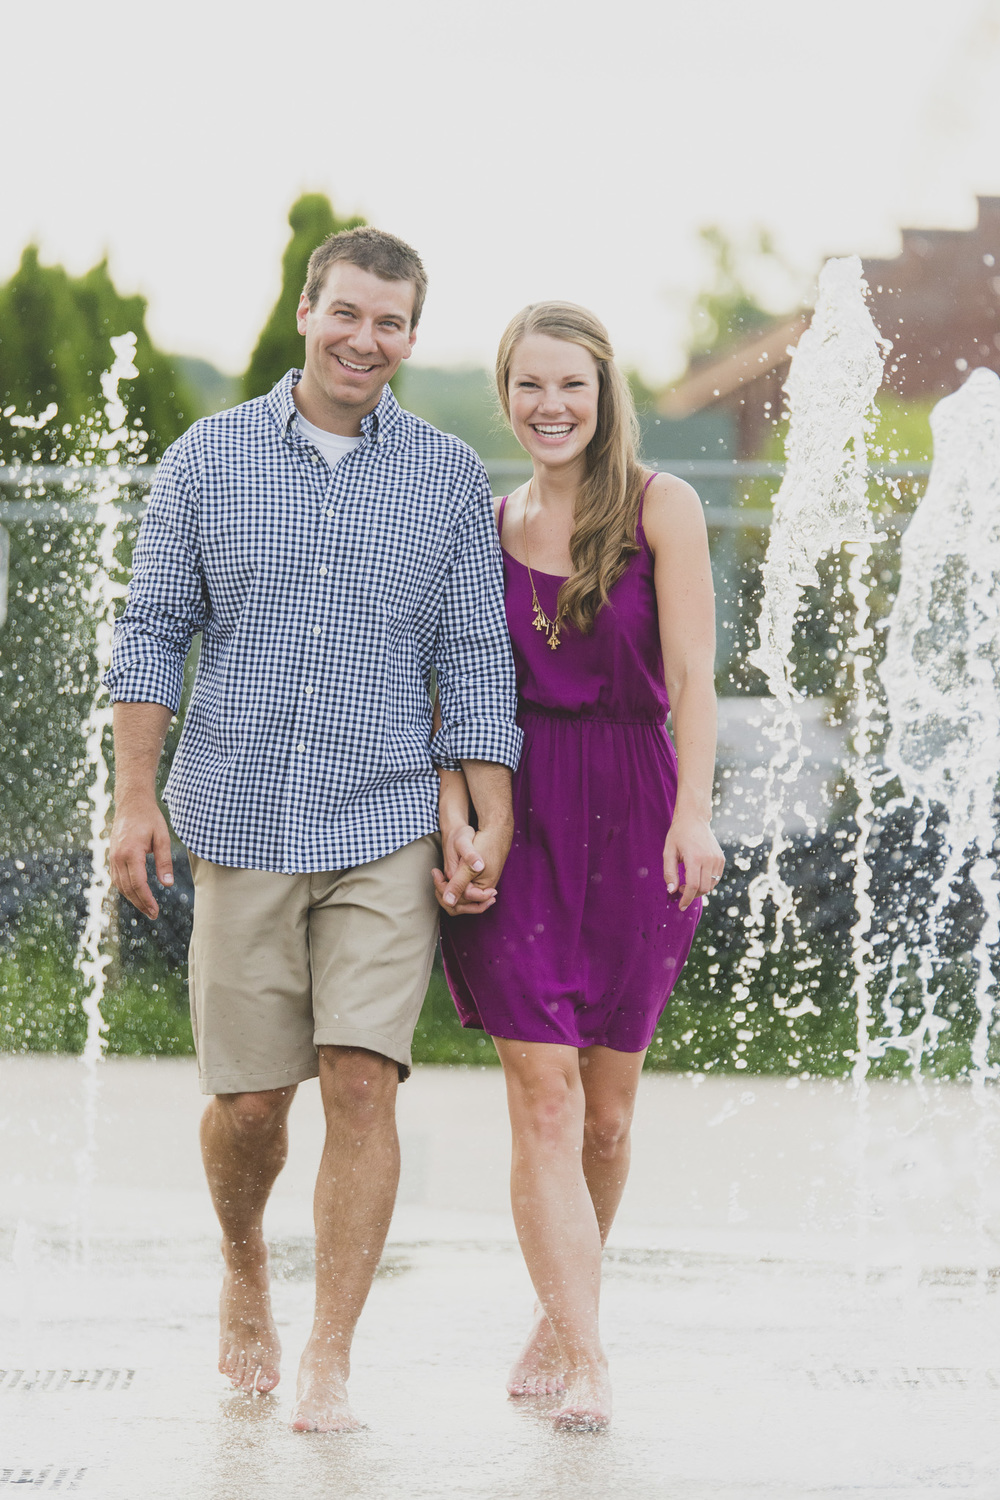 Downtown_Lynchburg_VA_craddock_Terry_Water_Fountain_Engagement_Session_Photos289.jpg